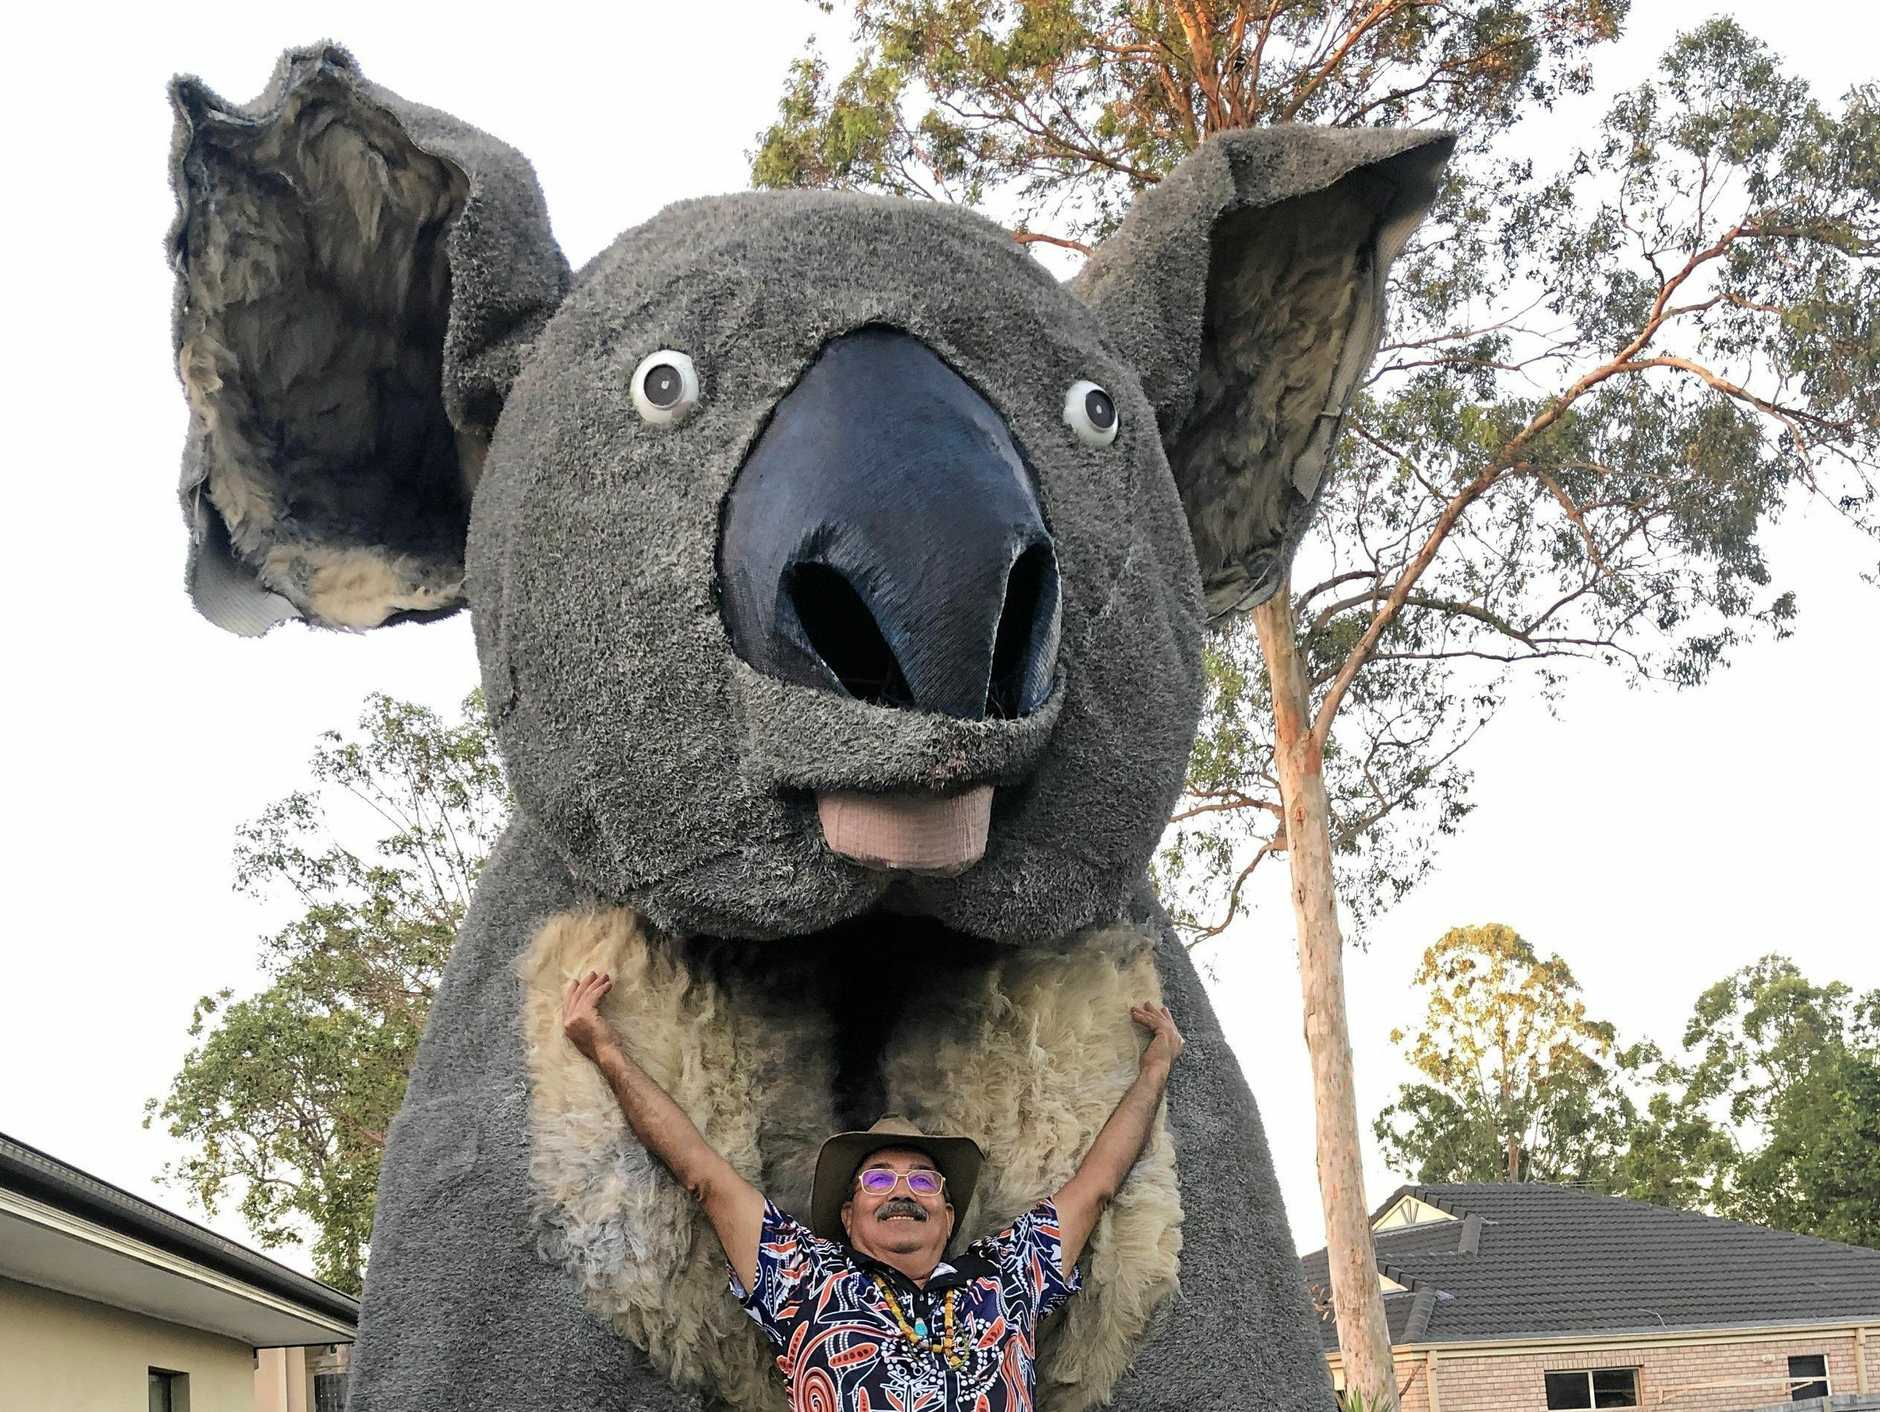 Townsville Cultural Festival's giant koala is heading to Maroochydore as it journeys from Brisbane along the Bruce Highway to its new home.